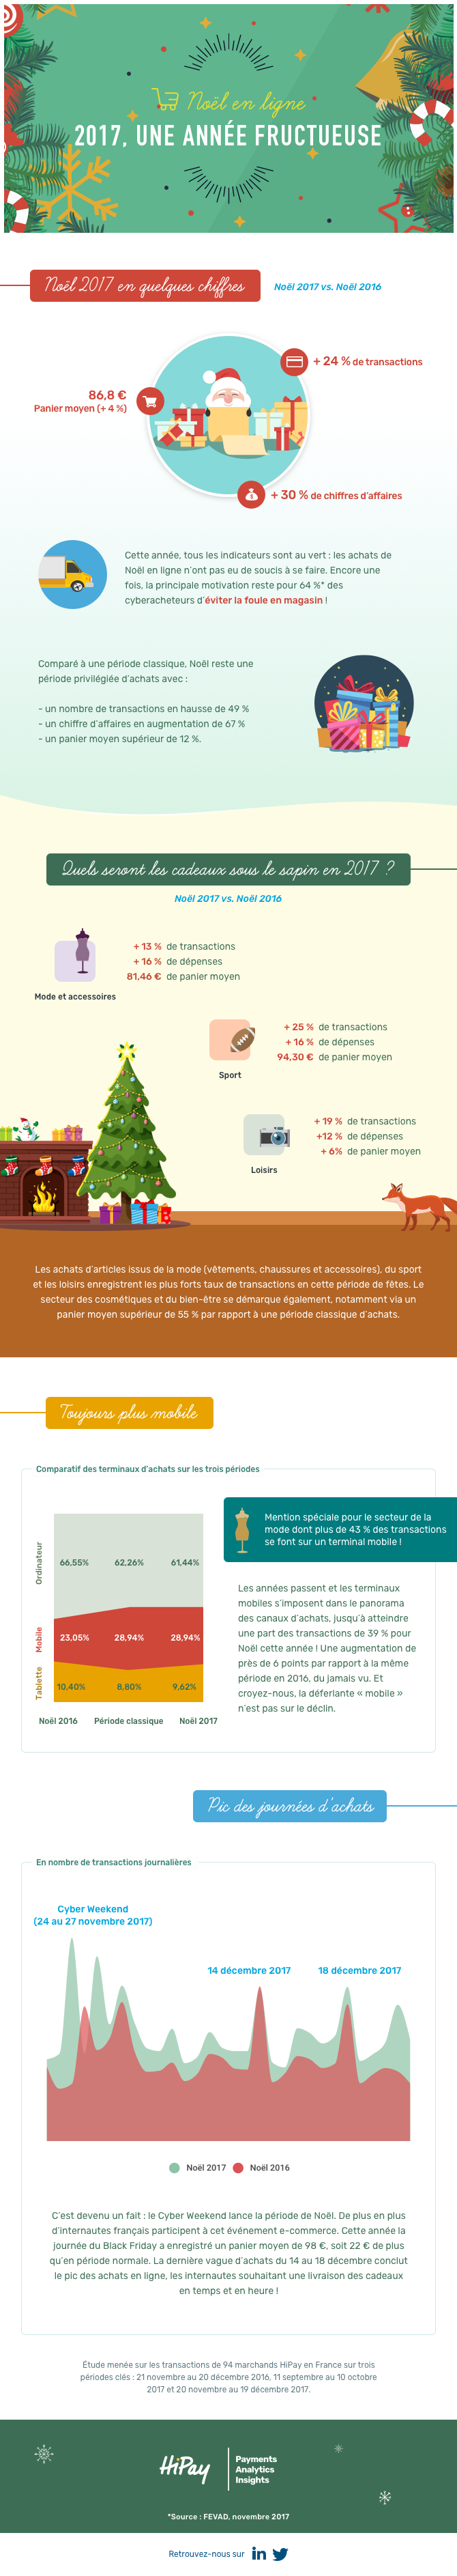 infographie_noel_2017.png